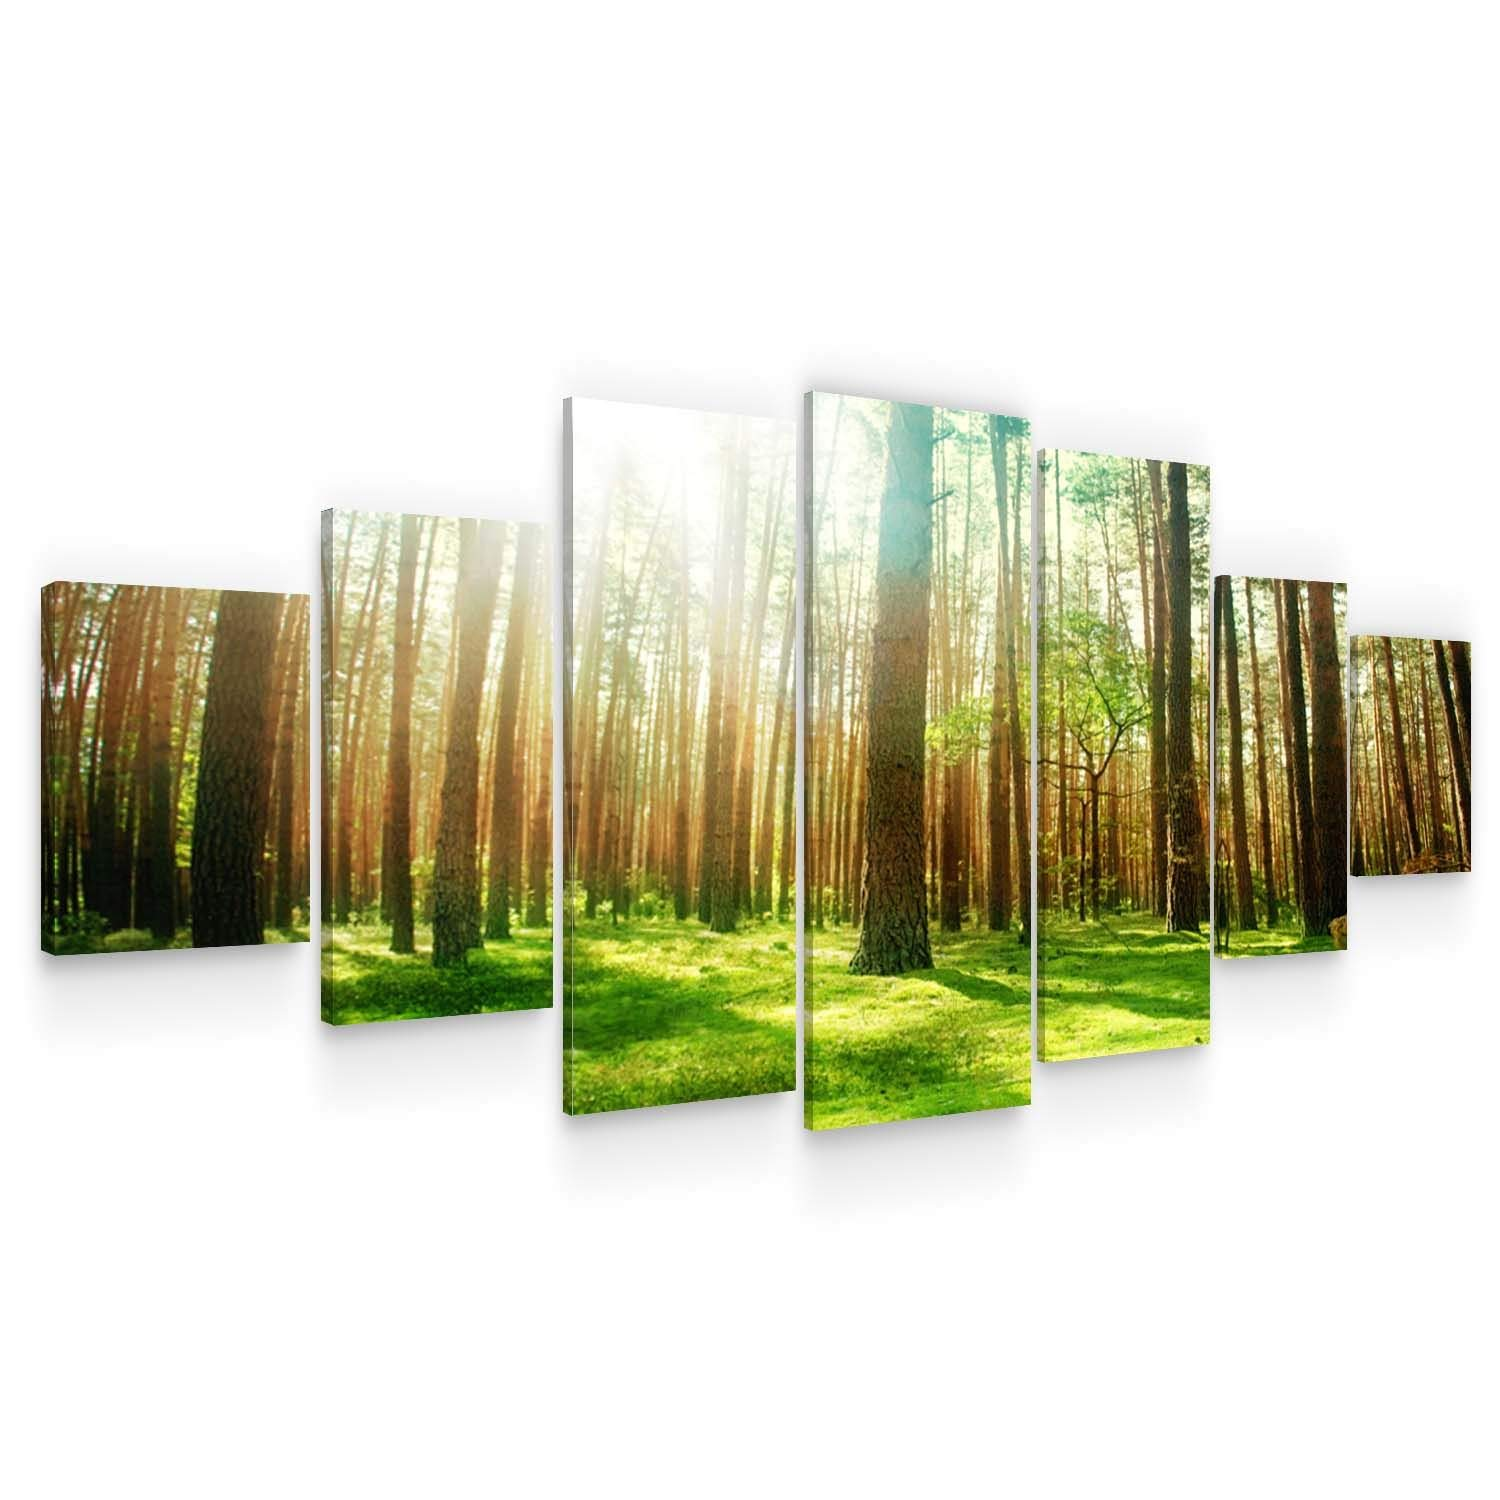 STARTONIGHT Large Canvas Wall Art Nature - Spring in The Woods - Huge Framed Modern Set of 7 Panels 40 x 95 Inches